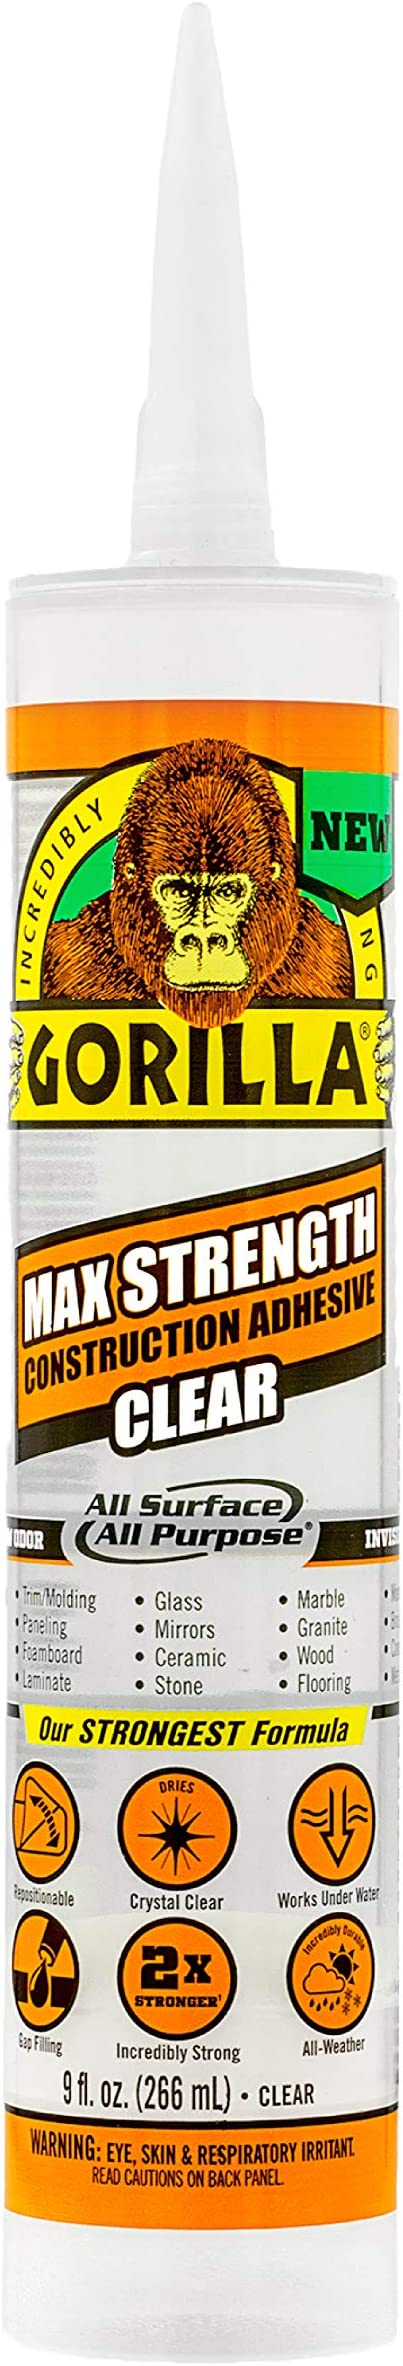 Gorilla Max Strength Clear Construction Adhesive, 9 ounce Cartridge, (Pack of 1) - 8212302